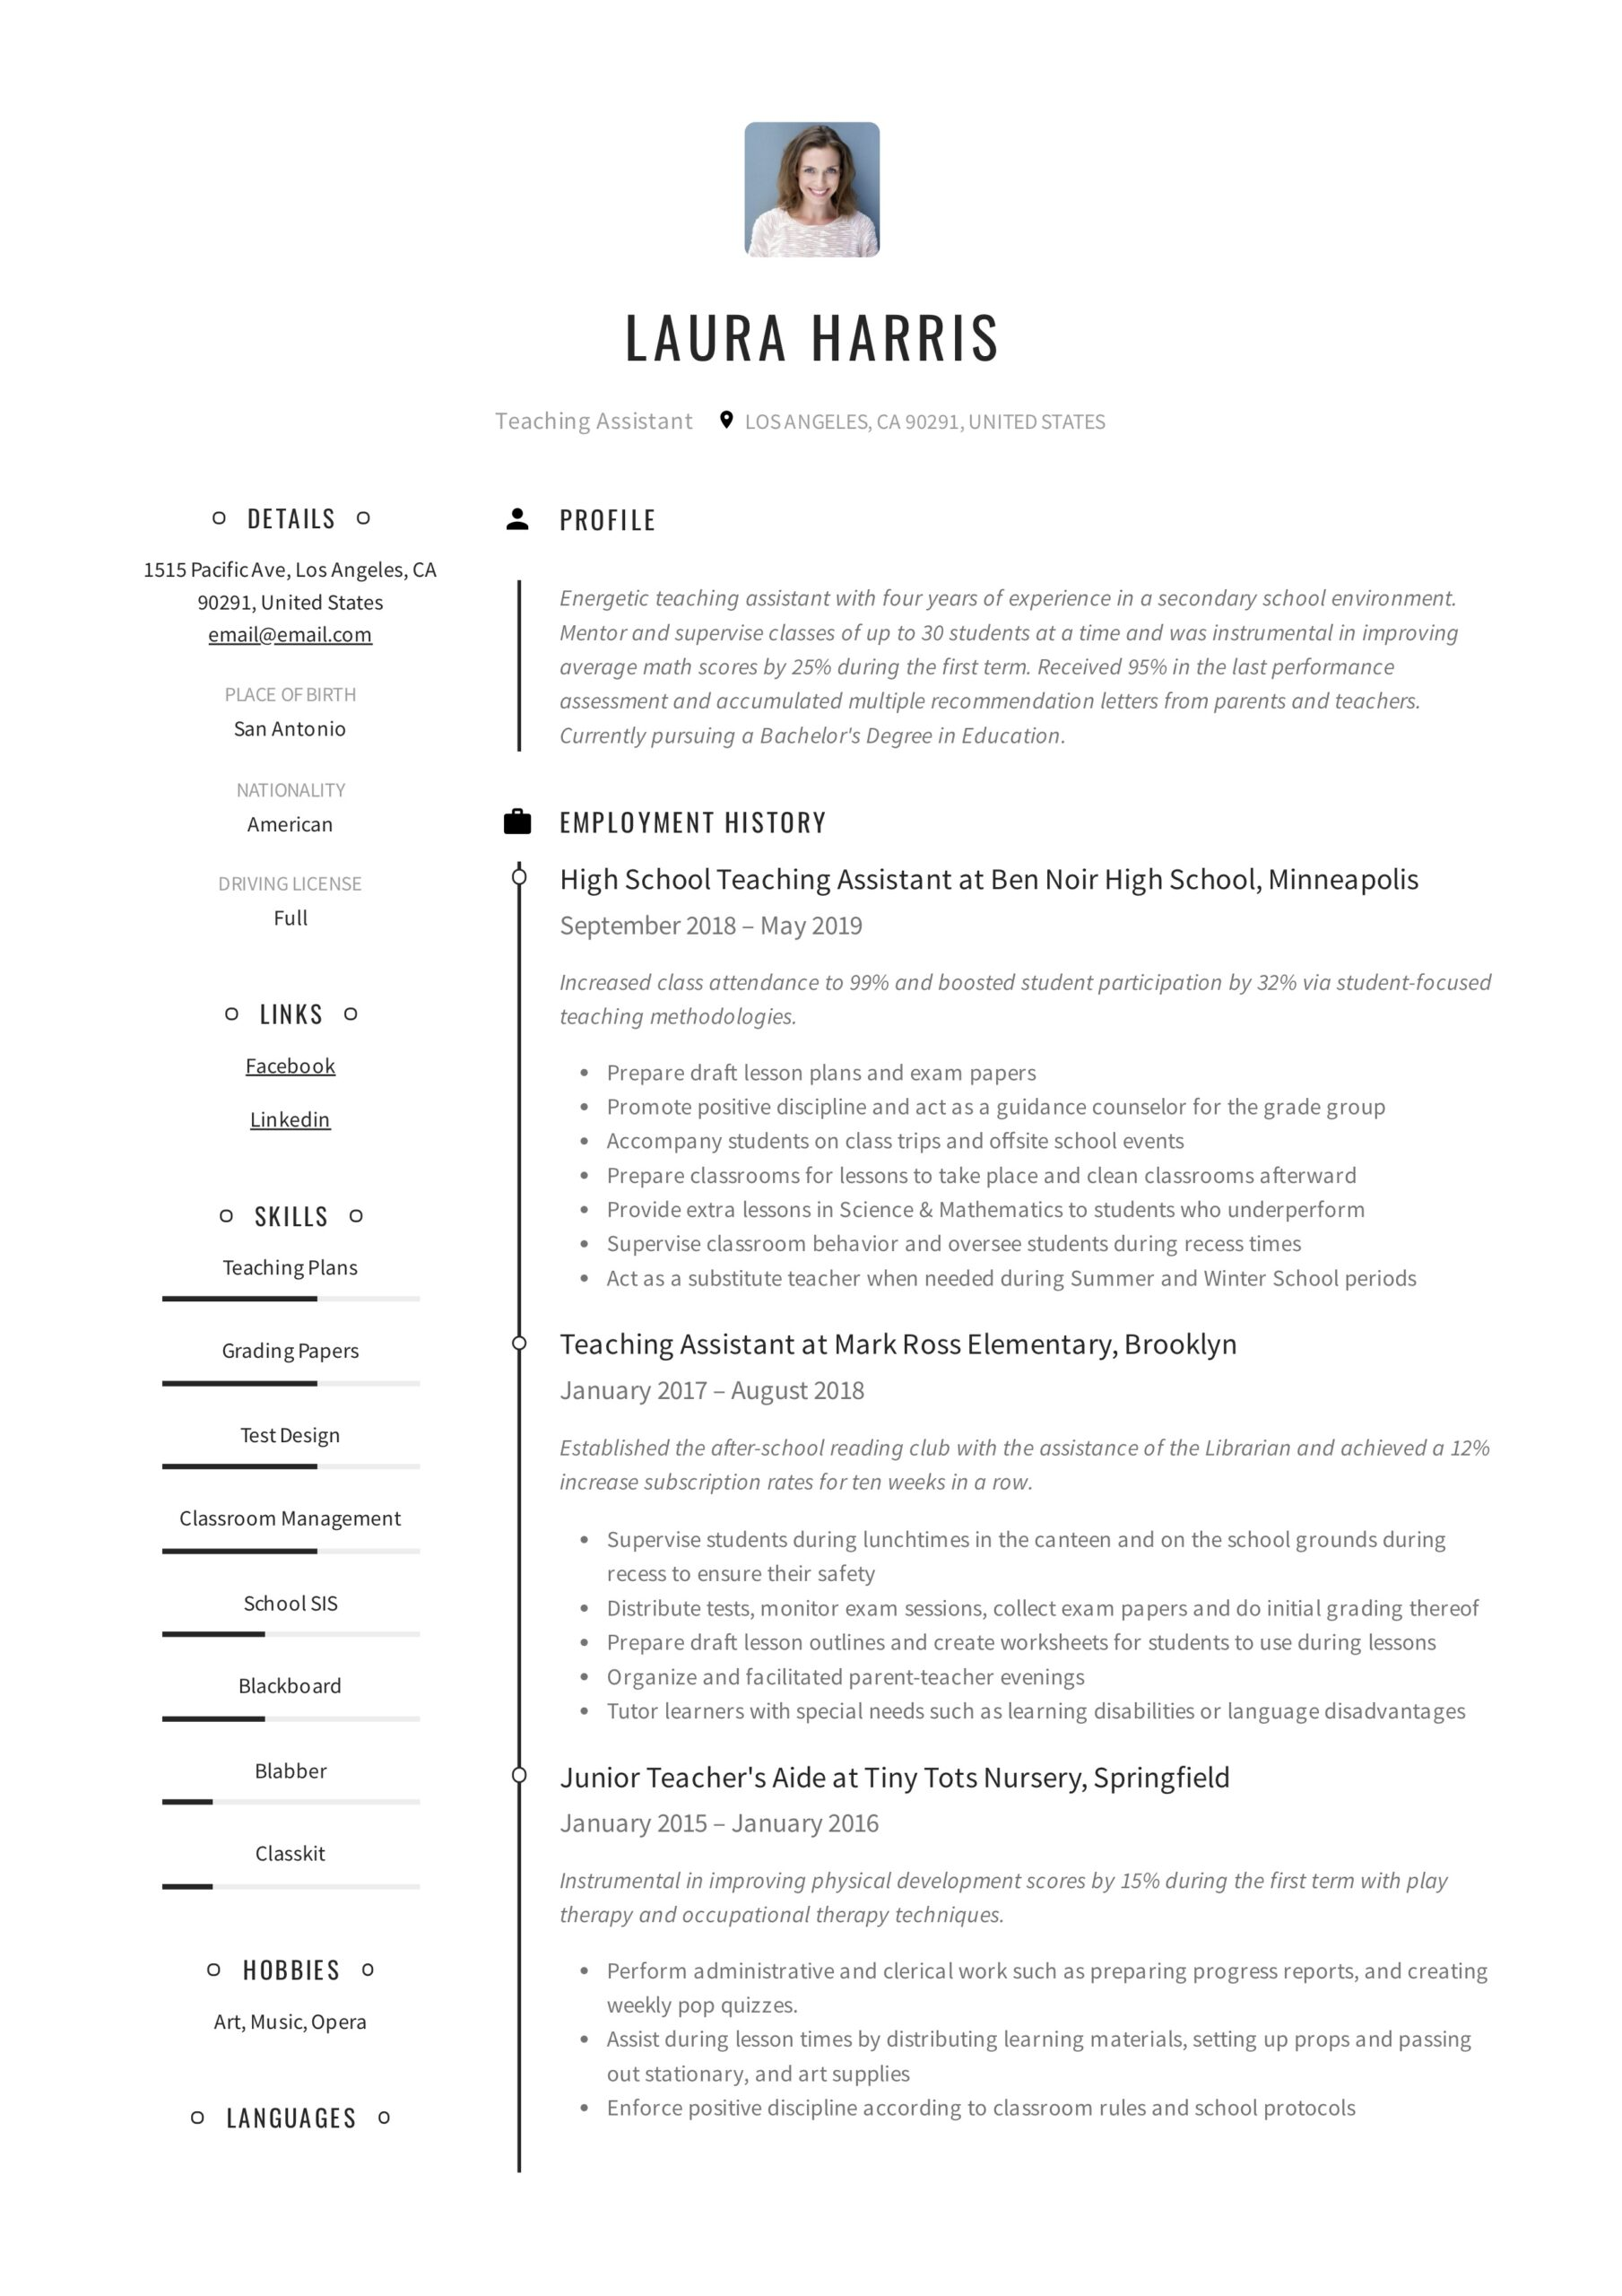 teaching assistant resume writing guide templates pdf template for teacher aide sap basis Resume Resume Template For Teacher Aide